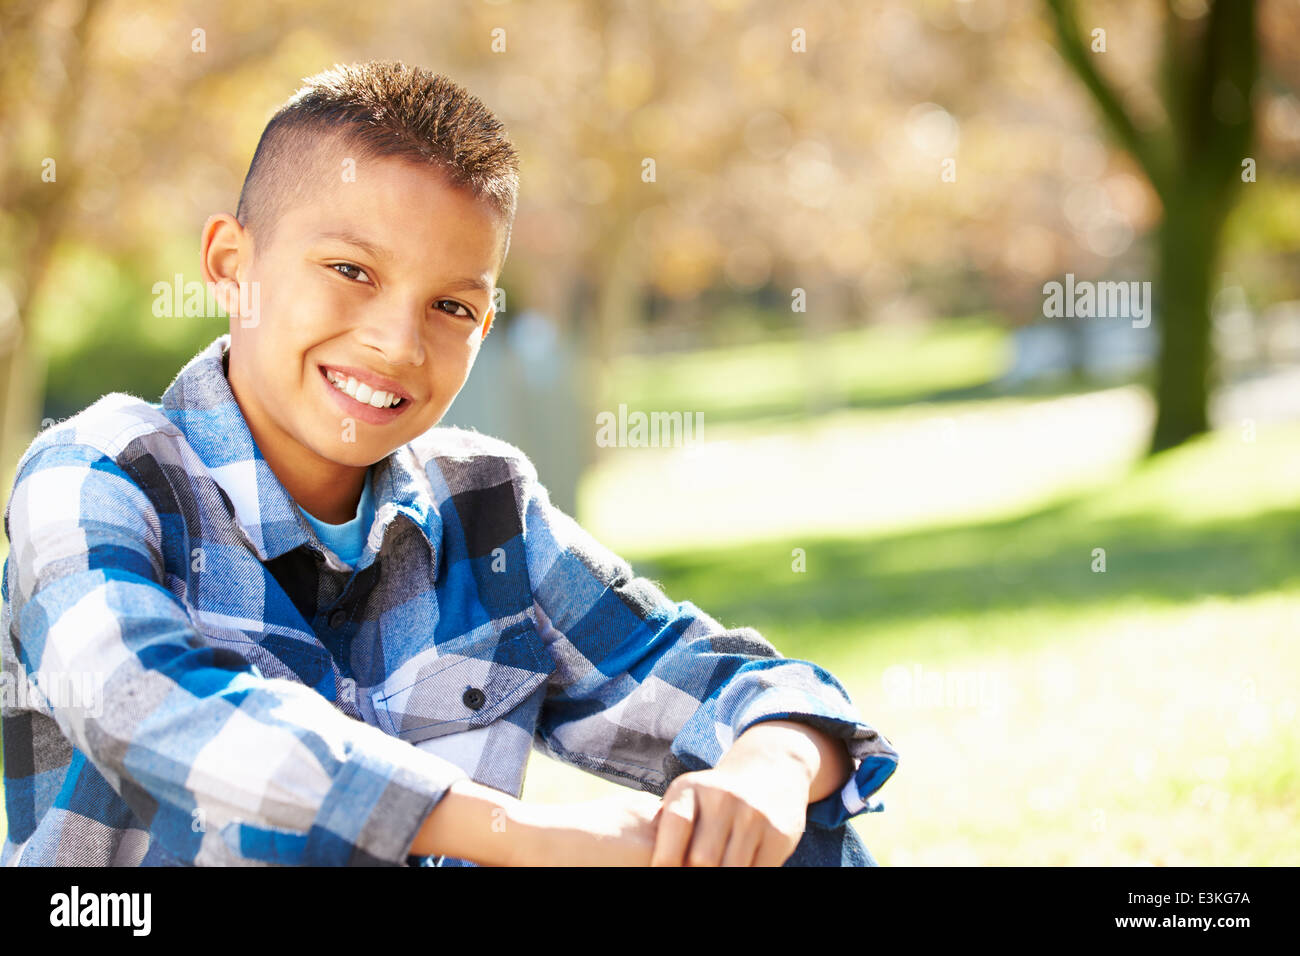 Portrait Of Boy in Countryside Photo Stock